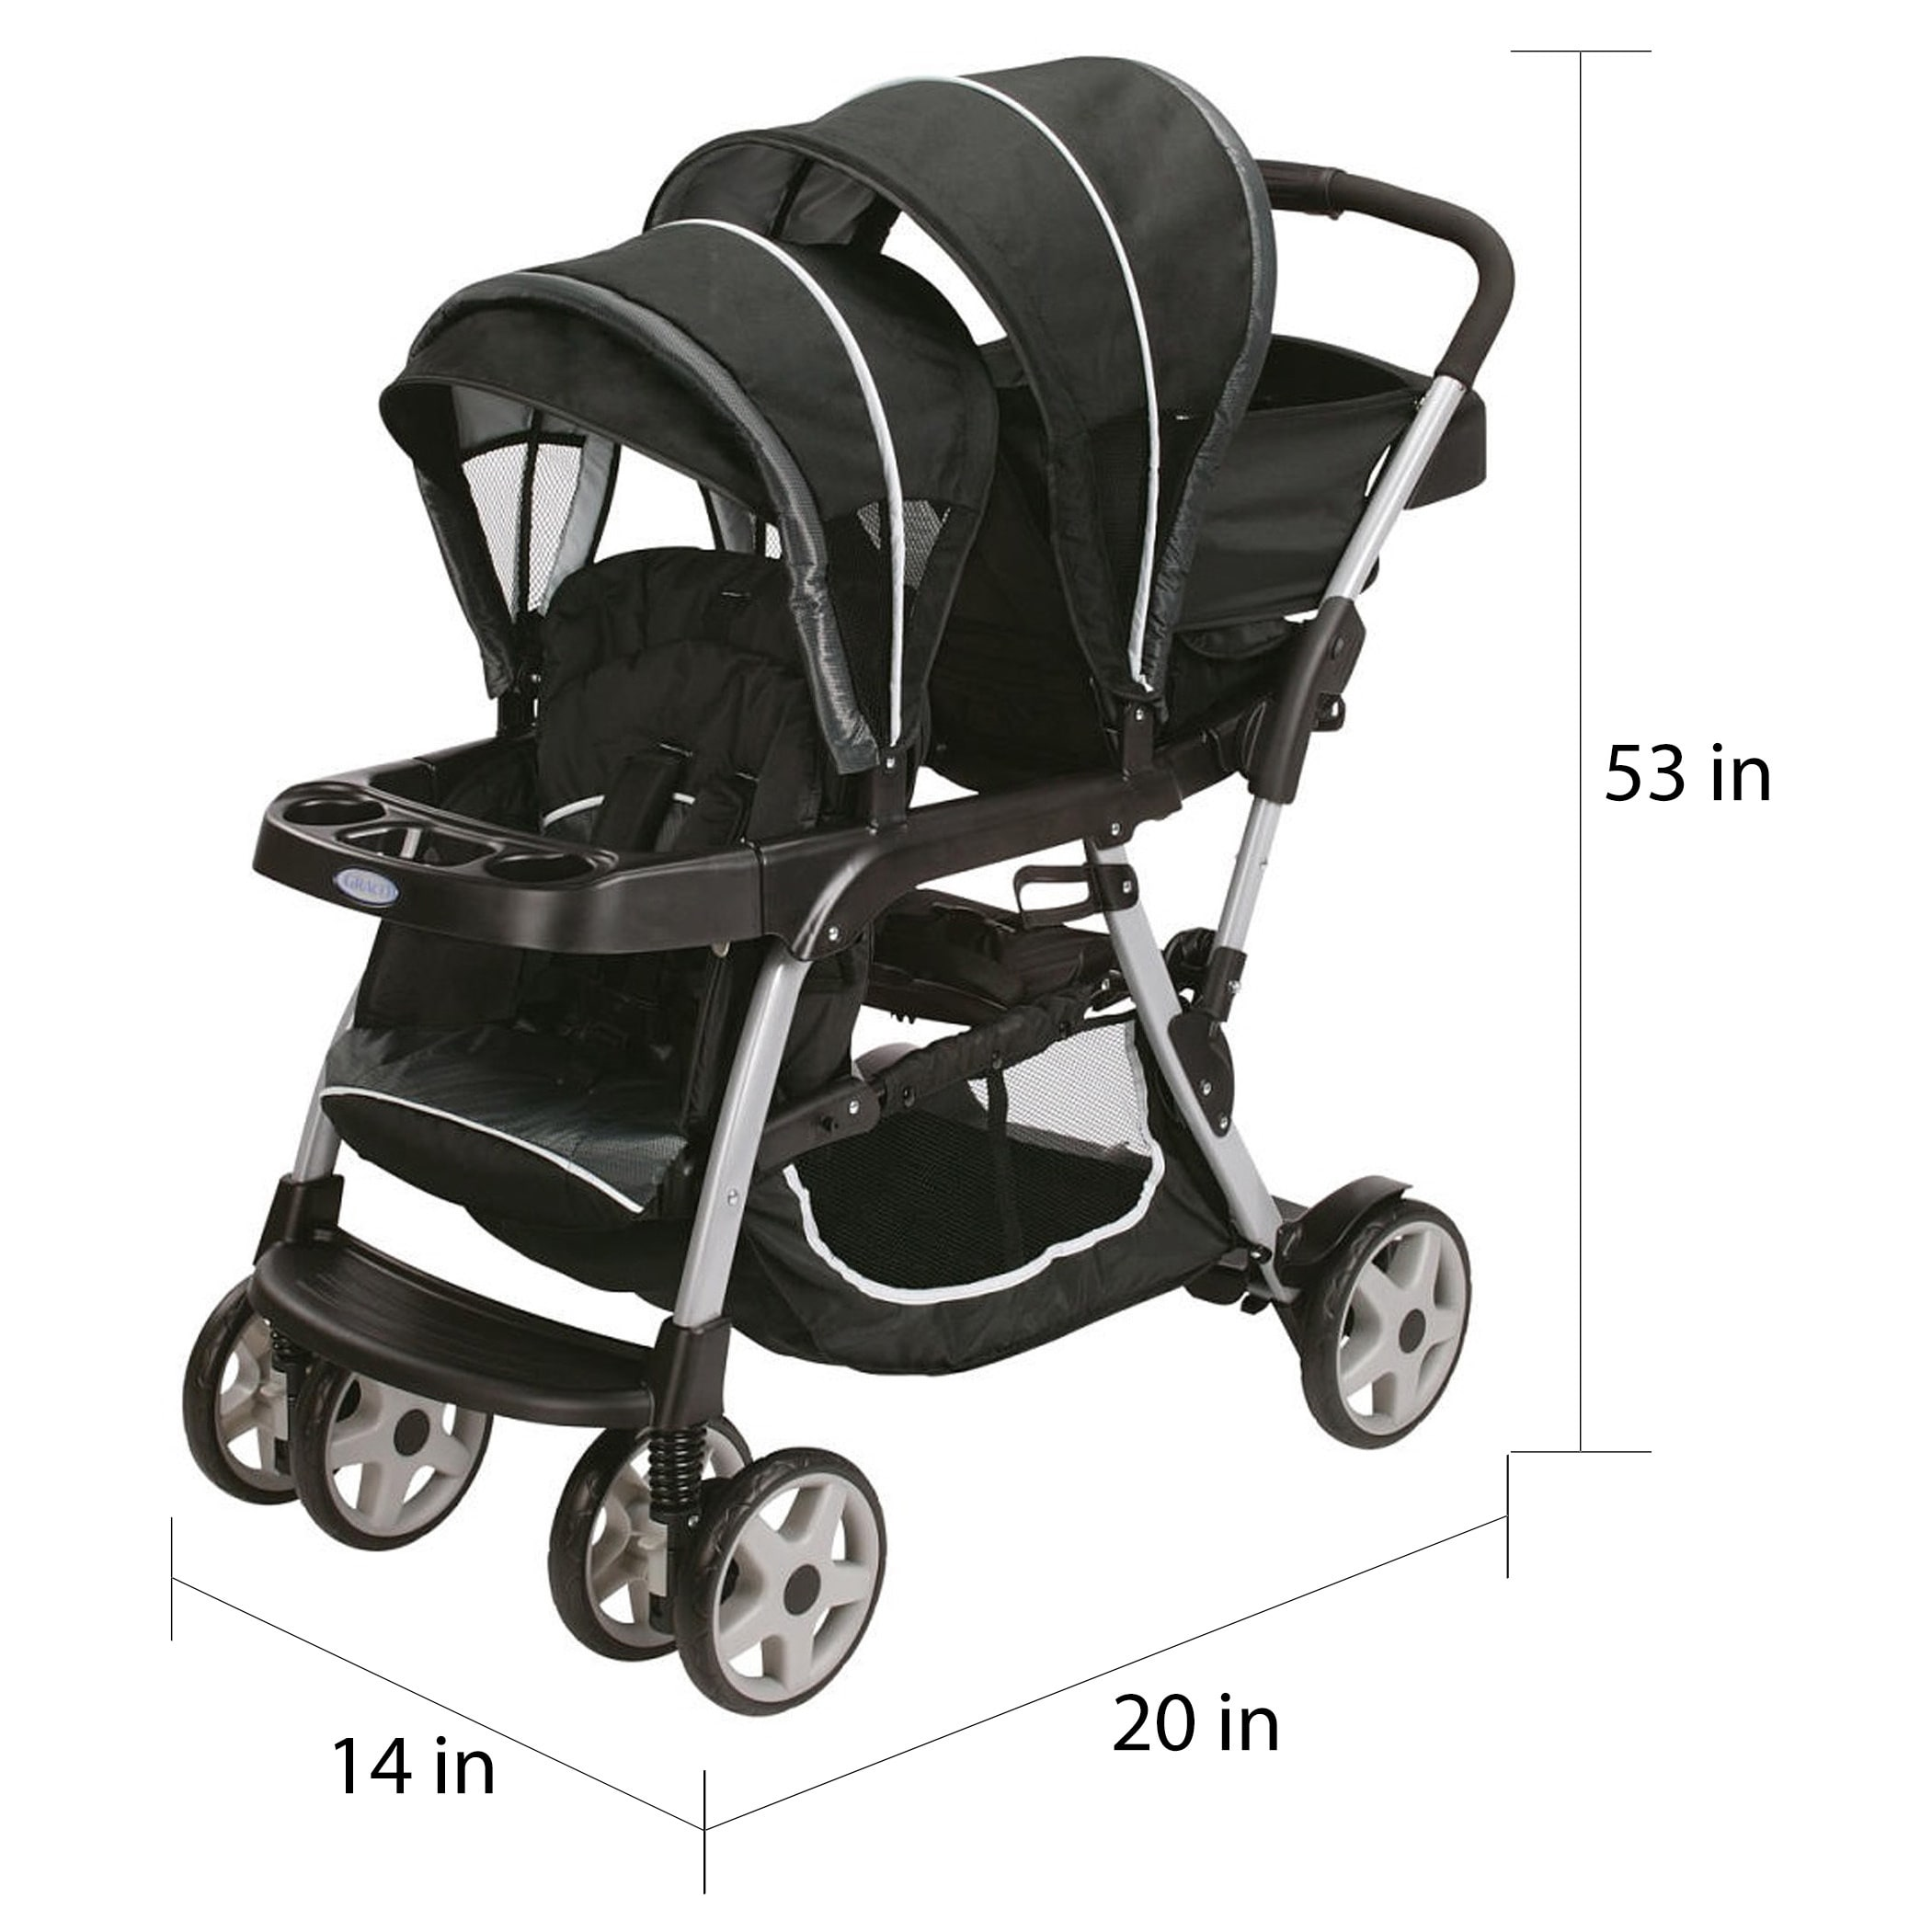 Graco Ready2Grow Click Connect LX Stroller in Gotham c4577a7f 7b35 4e97 b553 6adf4eb1846b